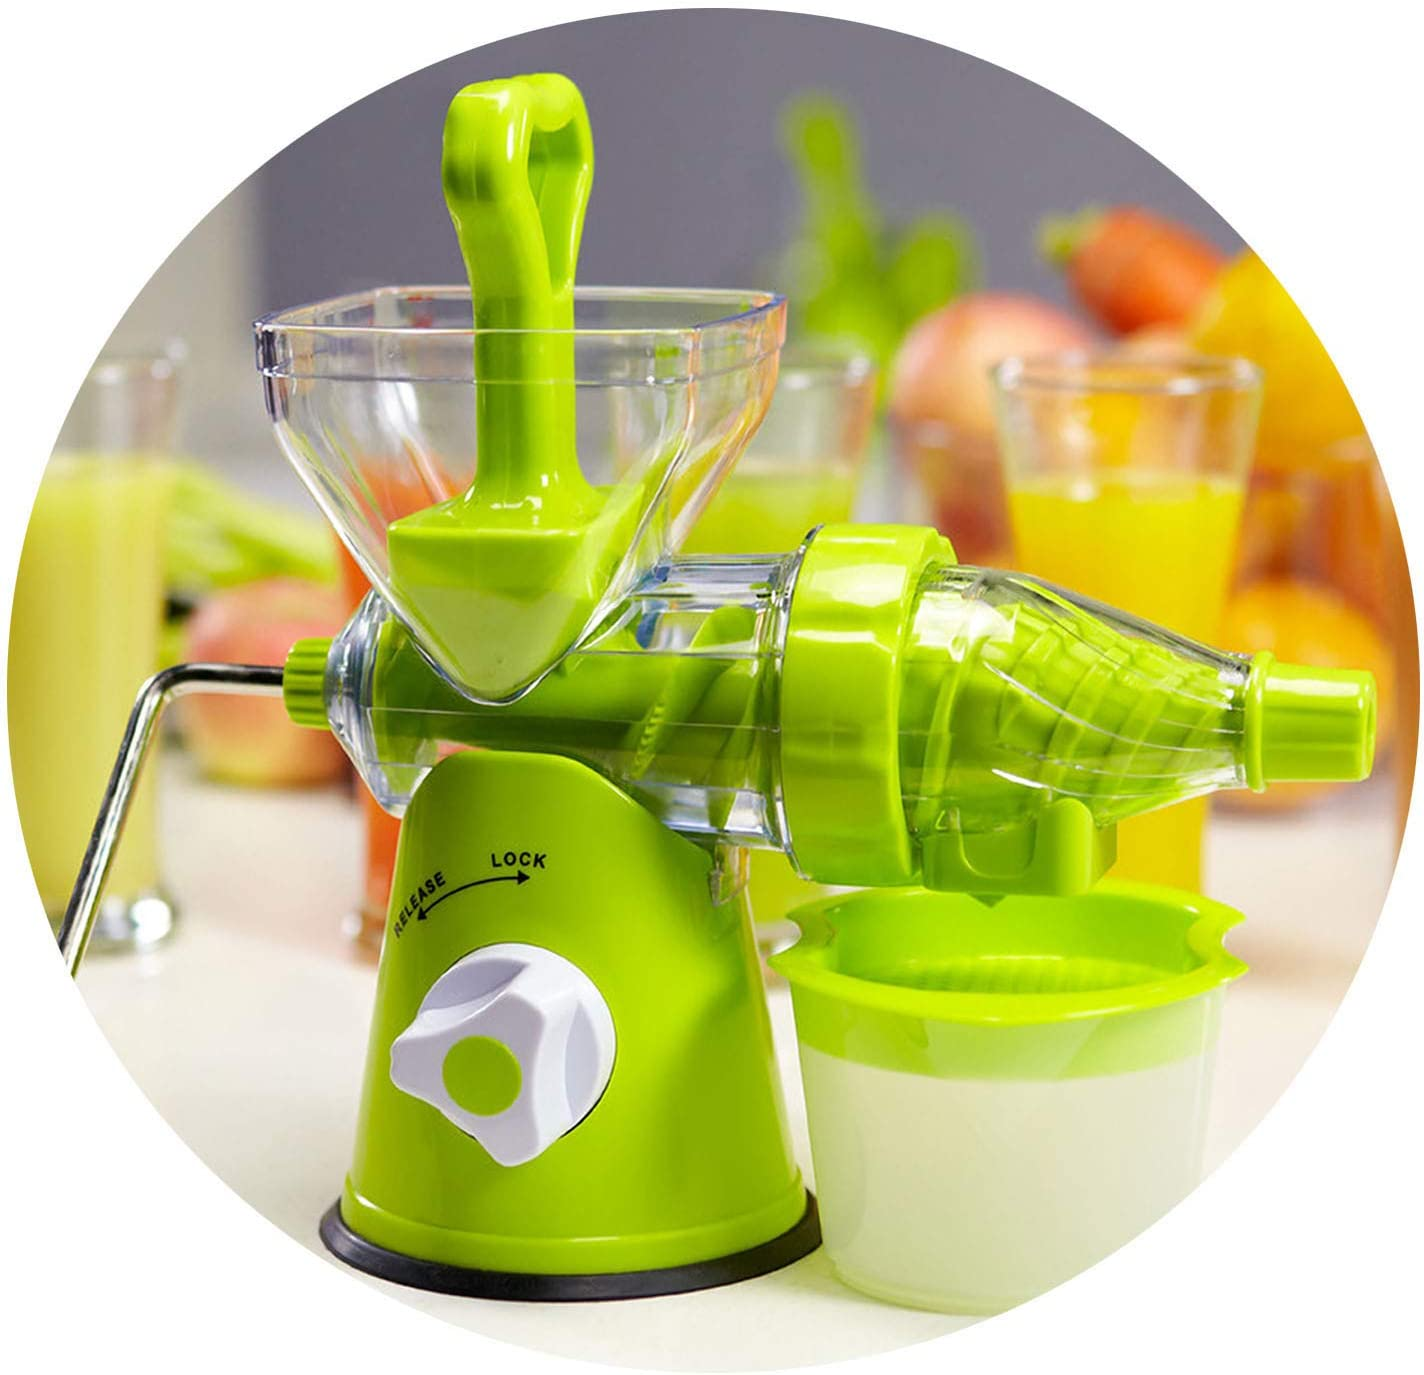 Manual Hand Juicer Multifunction Household Fresh Fruit Extractor Kitchen Tool Fruit Vegetable Manual Juicer Suction Base,style A